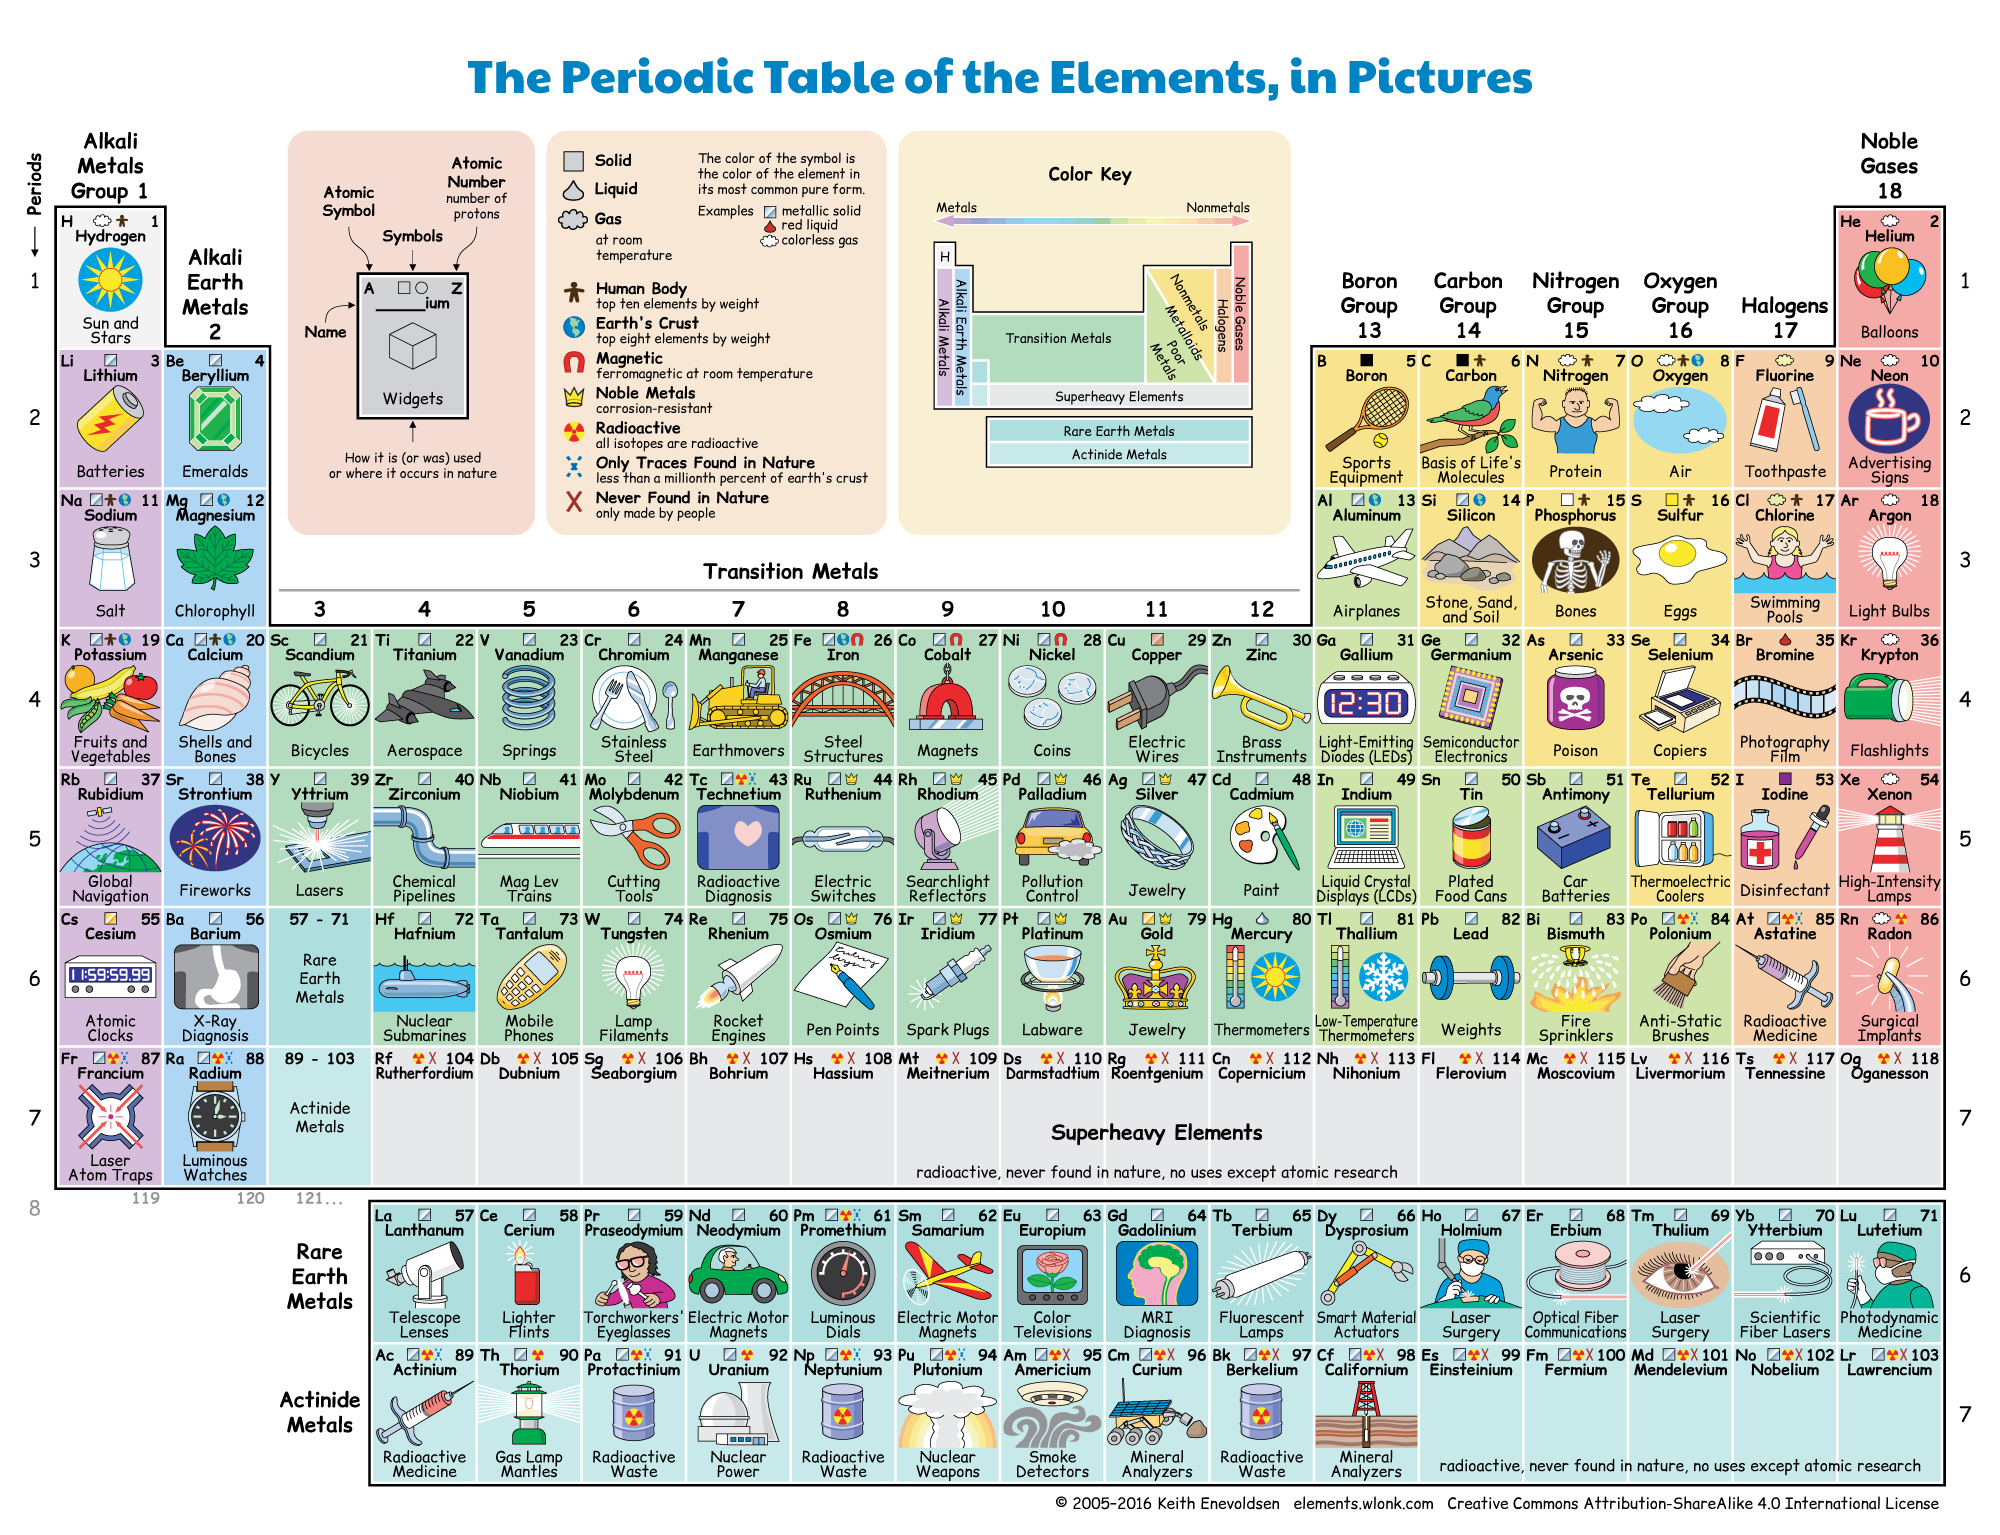 Filethe periodic table of the elements in picturesg wikimedia filethe periodic table of the elements in picturesg urtaz Choice Image